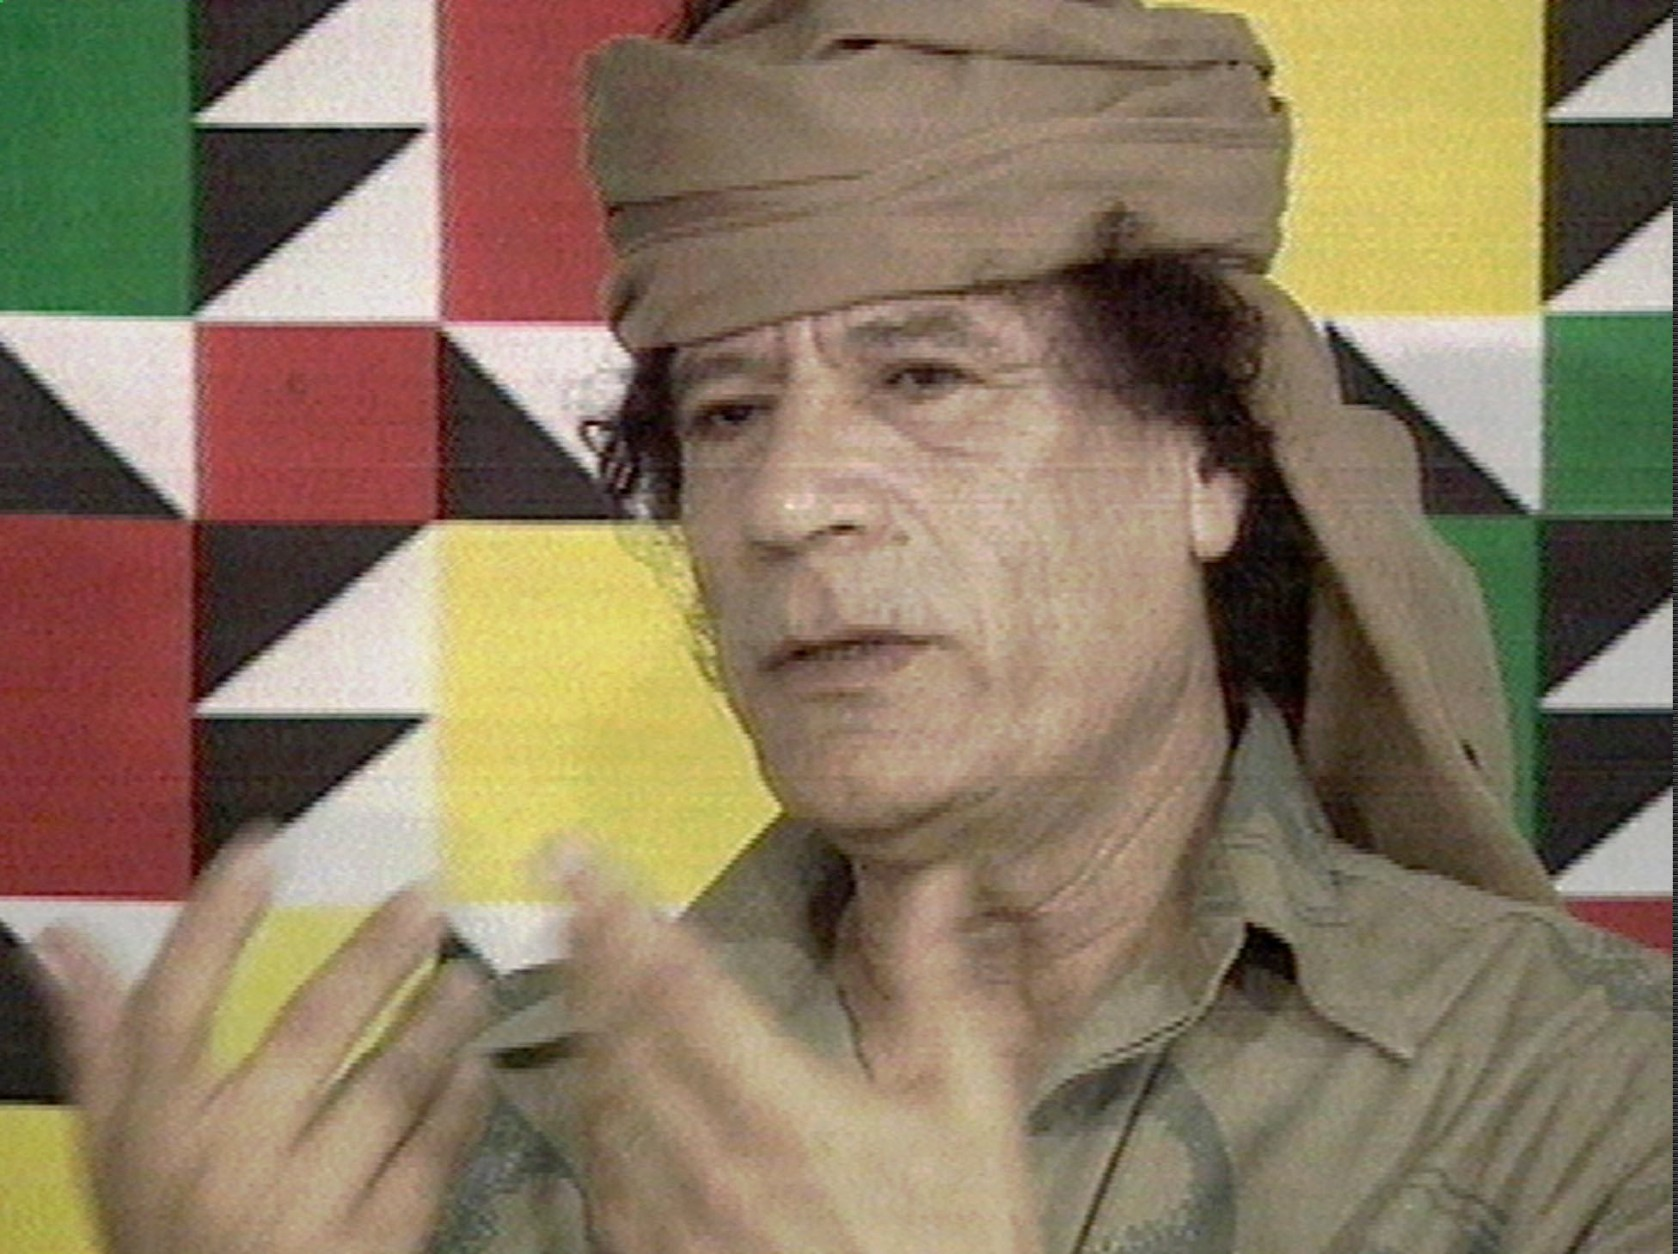 LIBYAN LEADER, DICTATOR, SPEAKING, GESTURING TURBAN,